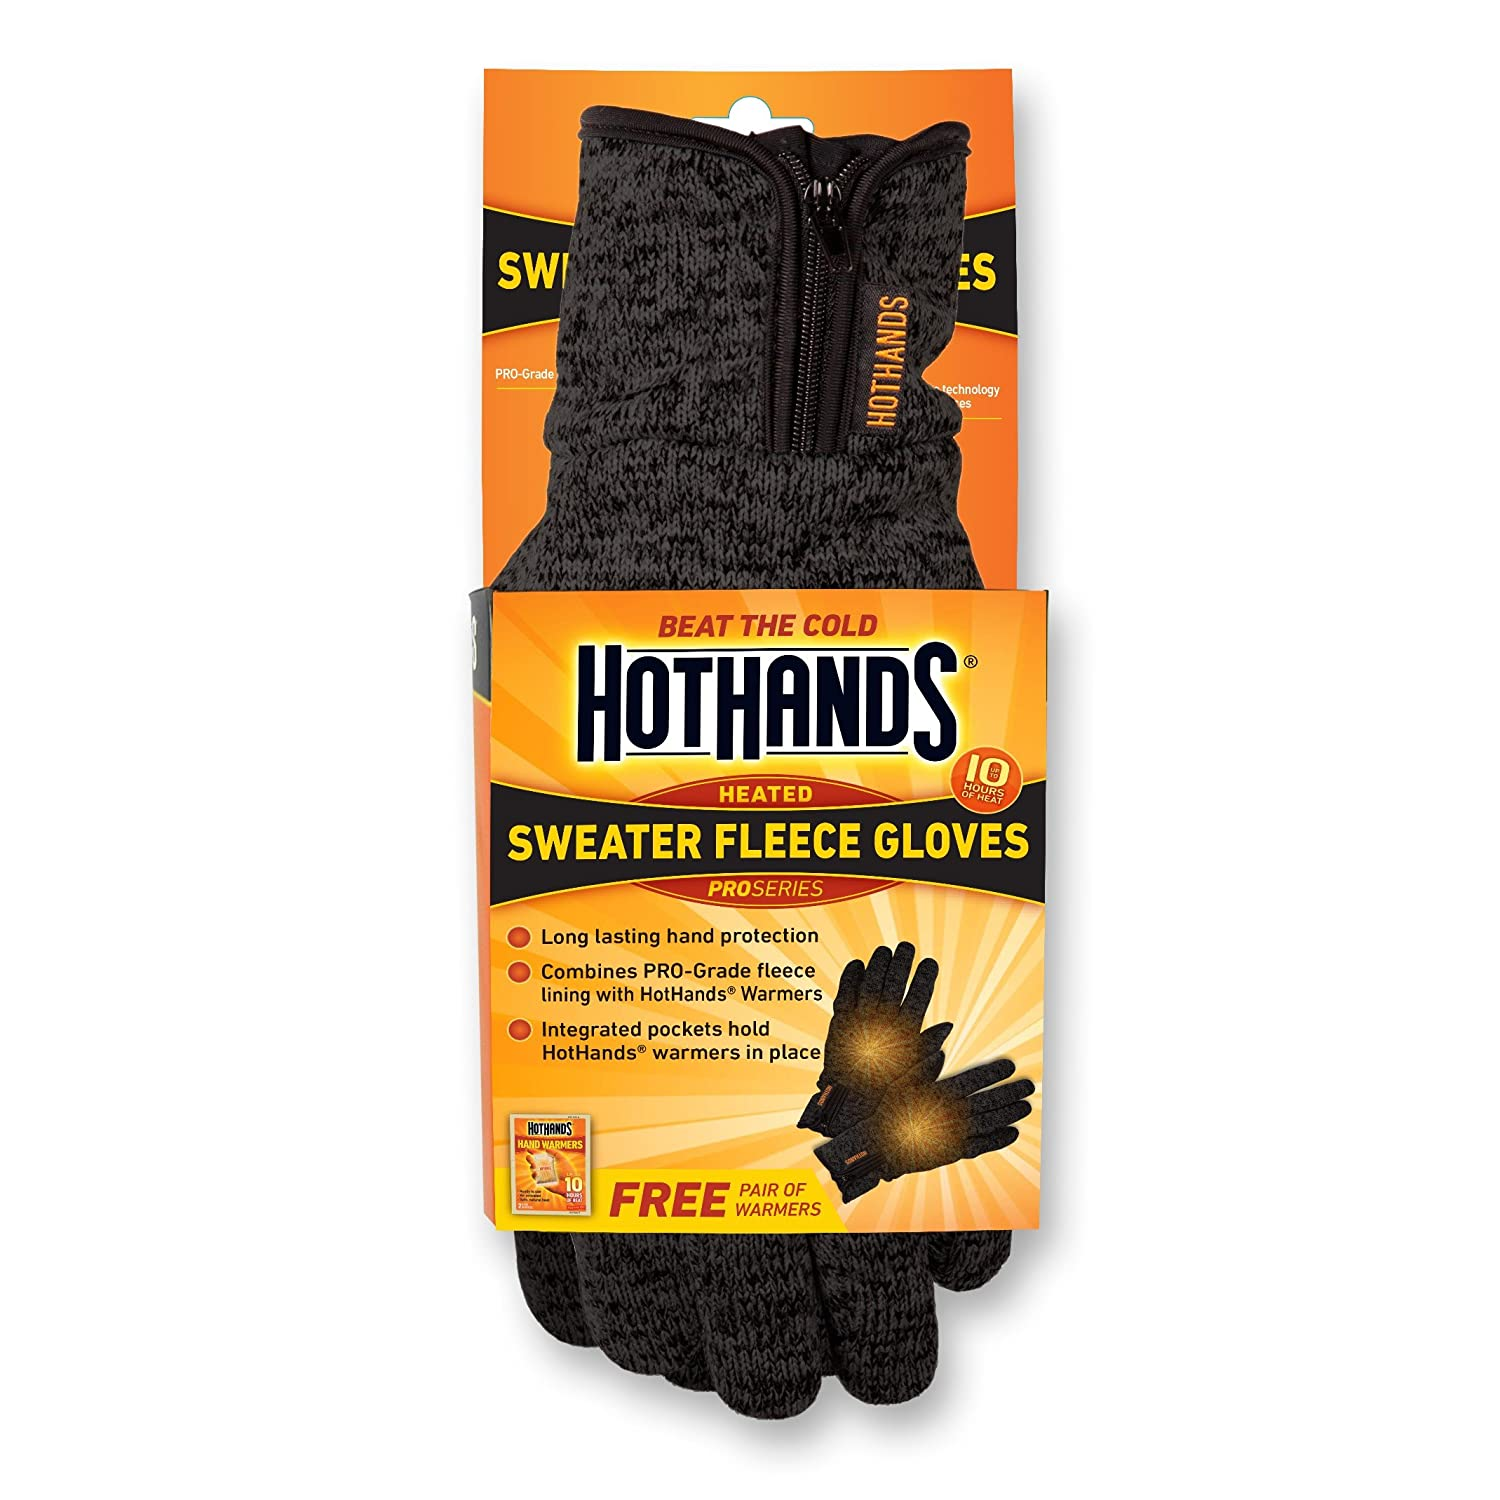 HotHands Sweater Fleece Gloves, Charcoal Grey, Large/X-Large HHGGLXL